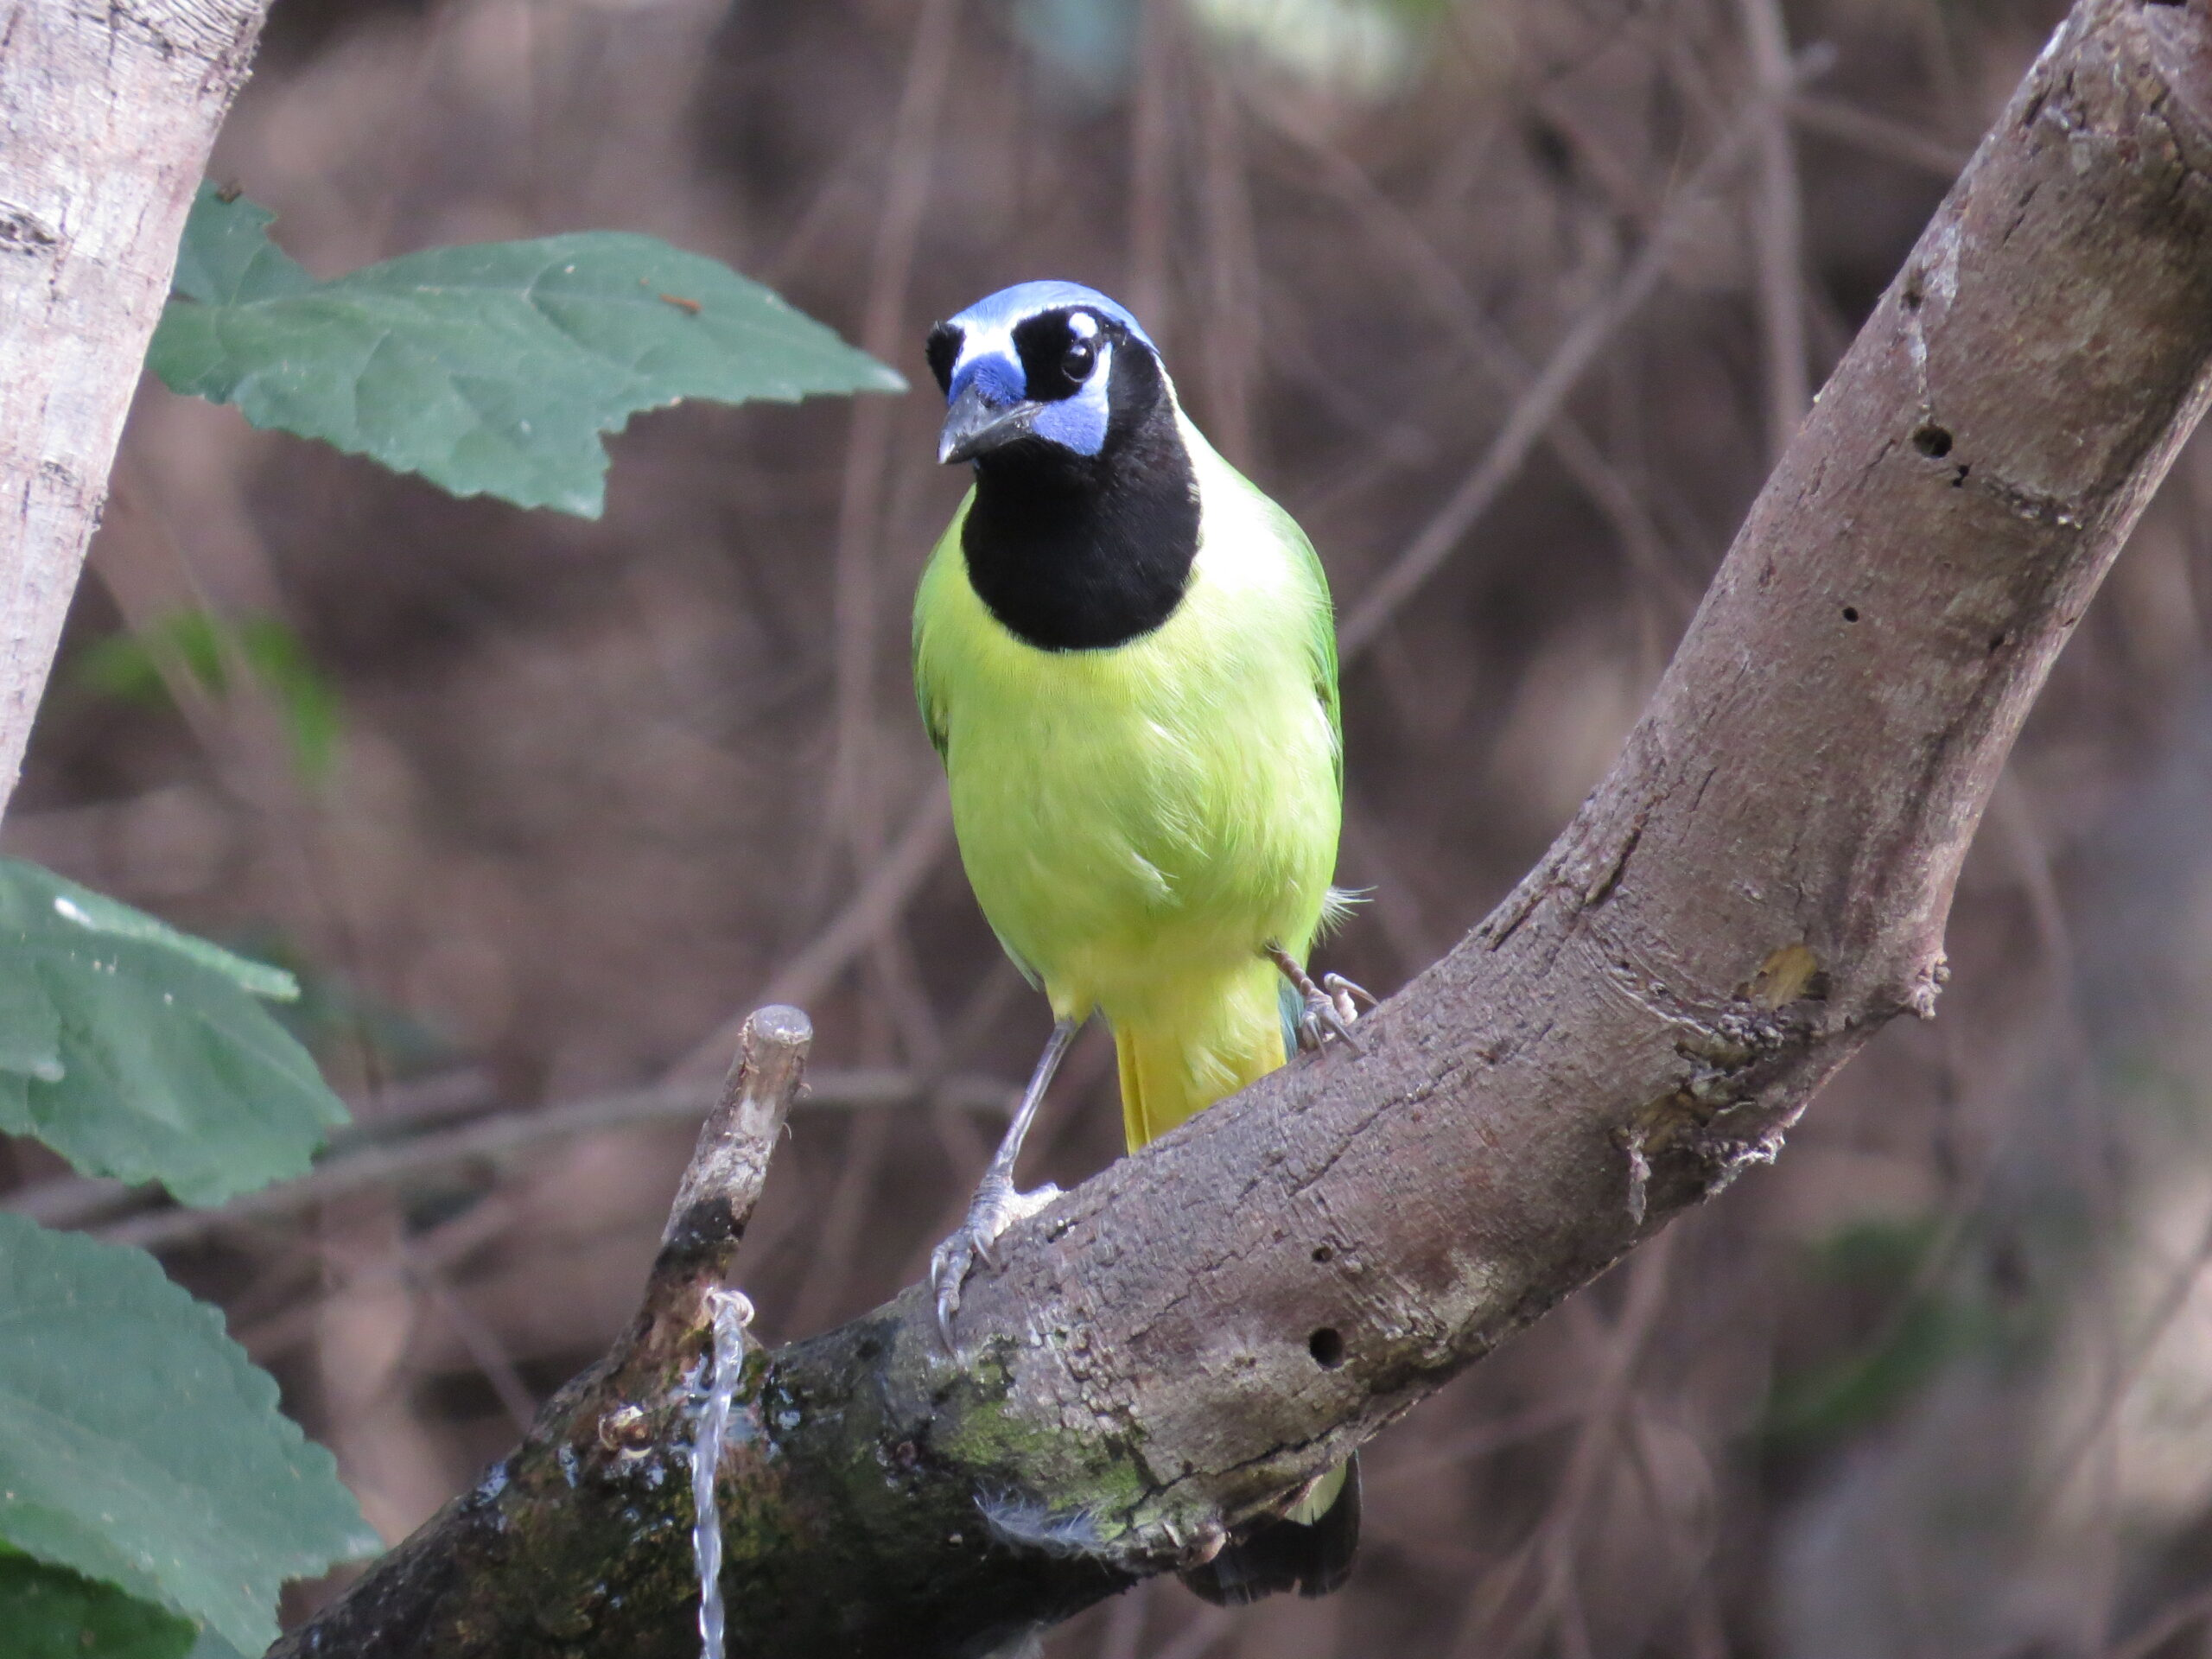 Green Jay at Natl Butterfly Ctr by Lora Reynolds